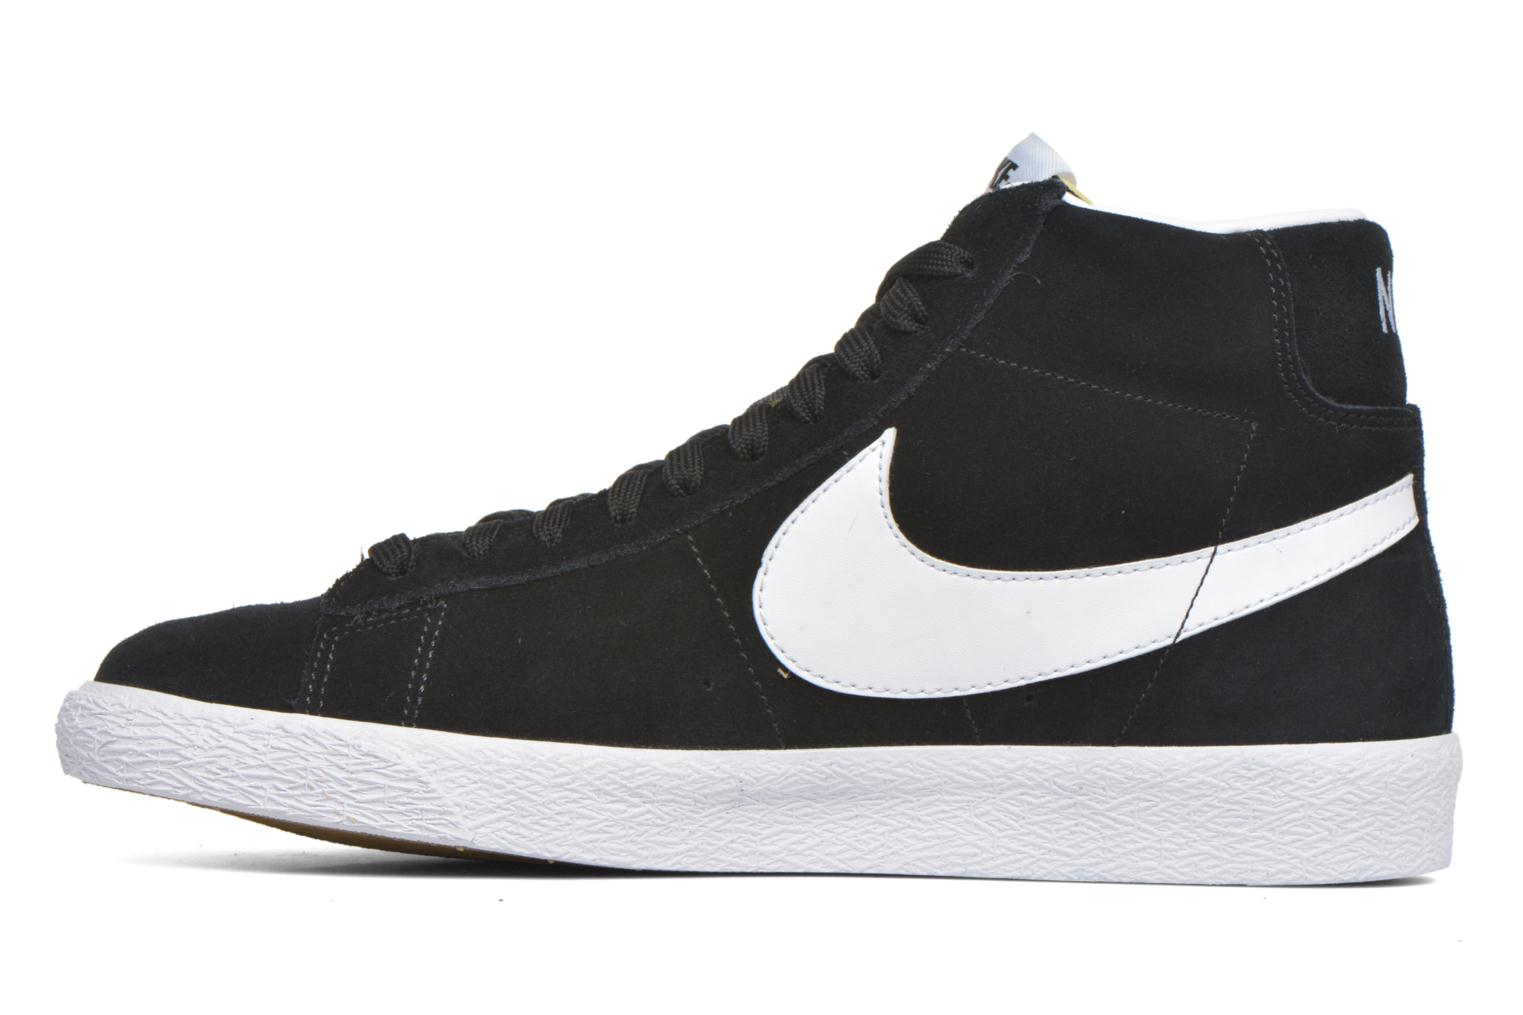 Blazer mid prm Black/White-Gum Light Brown